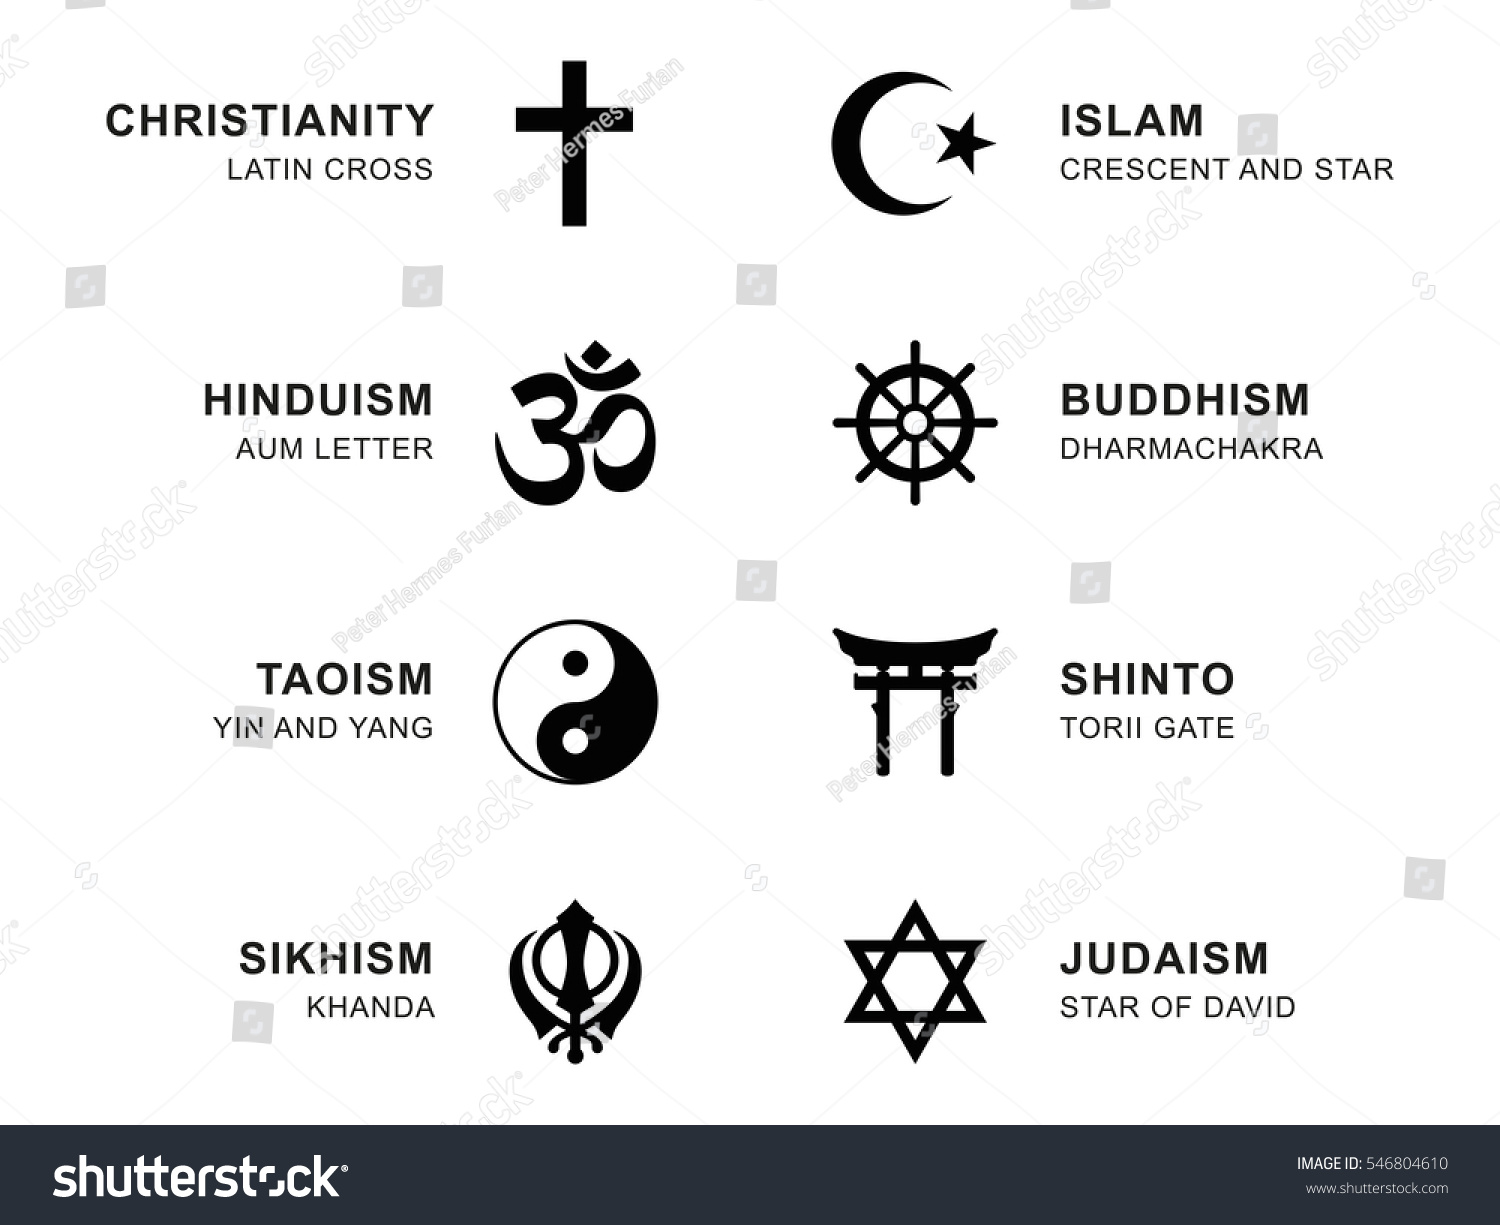 Sikhism is the same as Judaism: